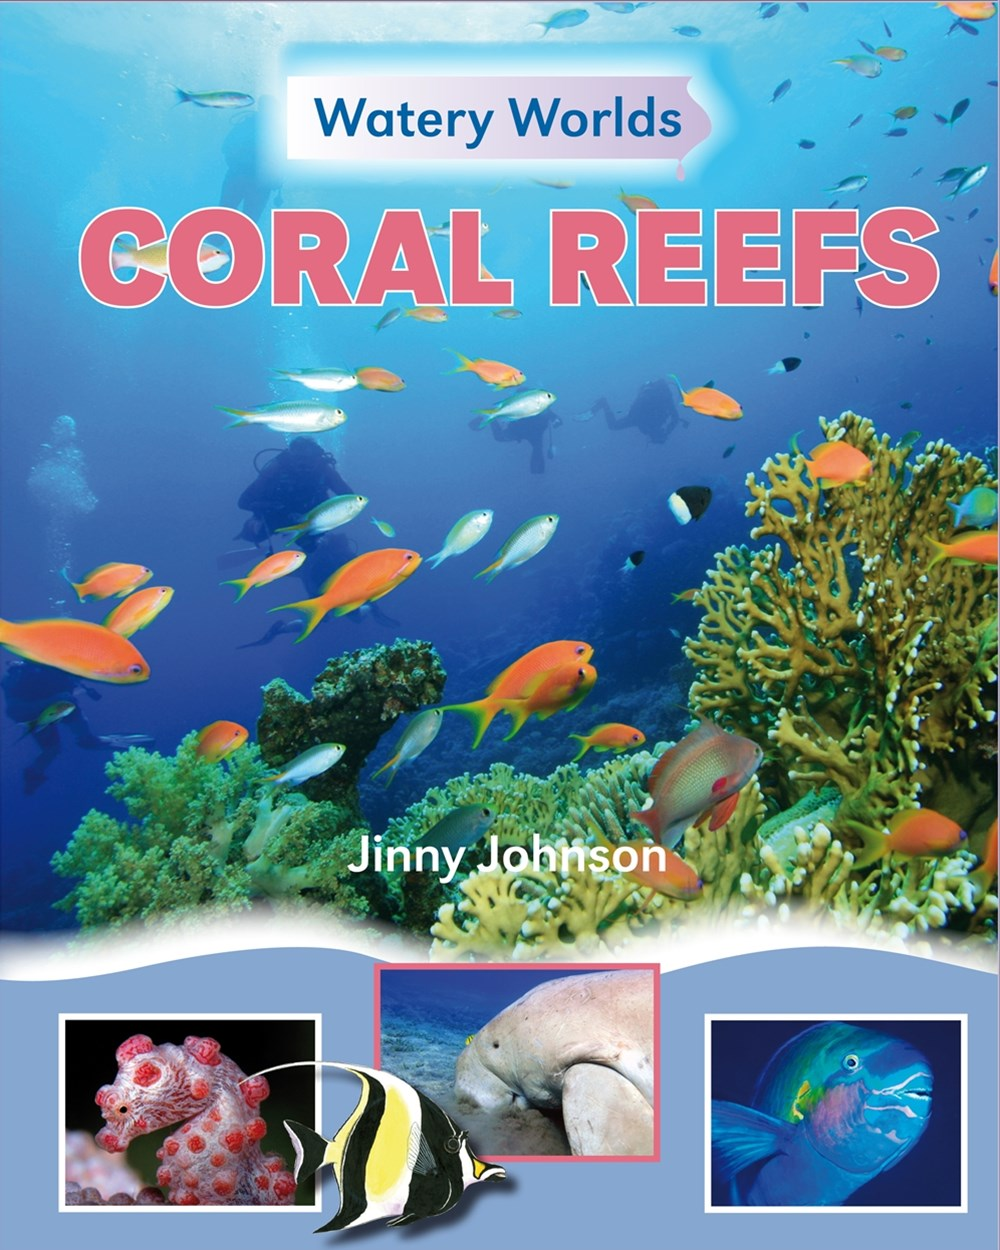 Watery Worlds: Coral Reefs